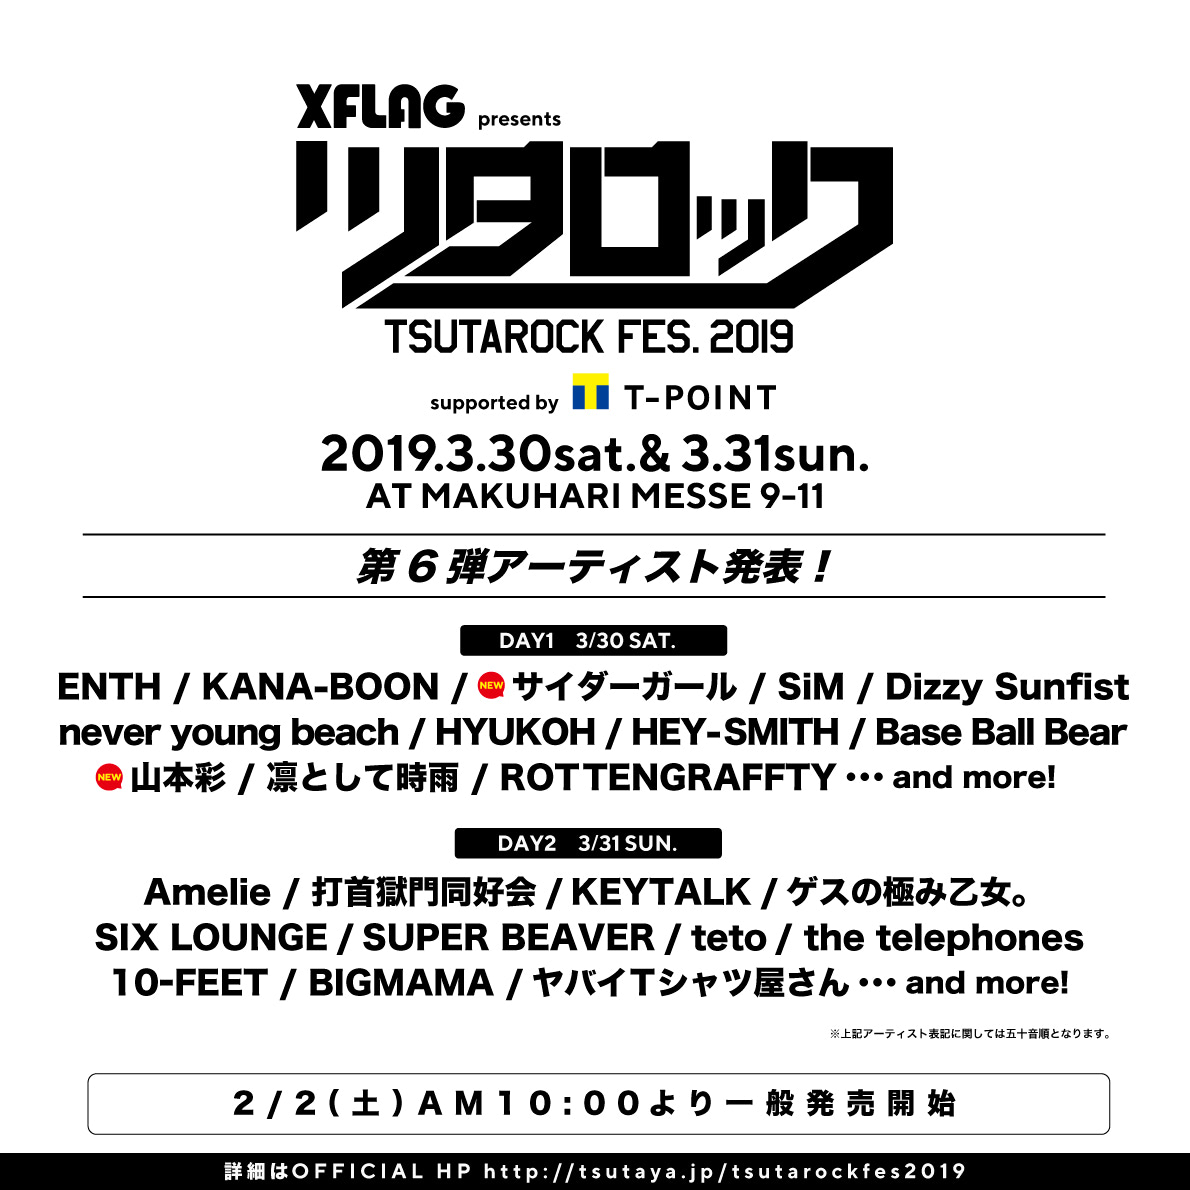 XFLAG presents ツタロックフェス 2019 supported by T ポイント